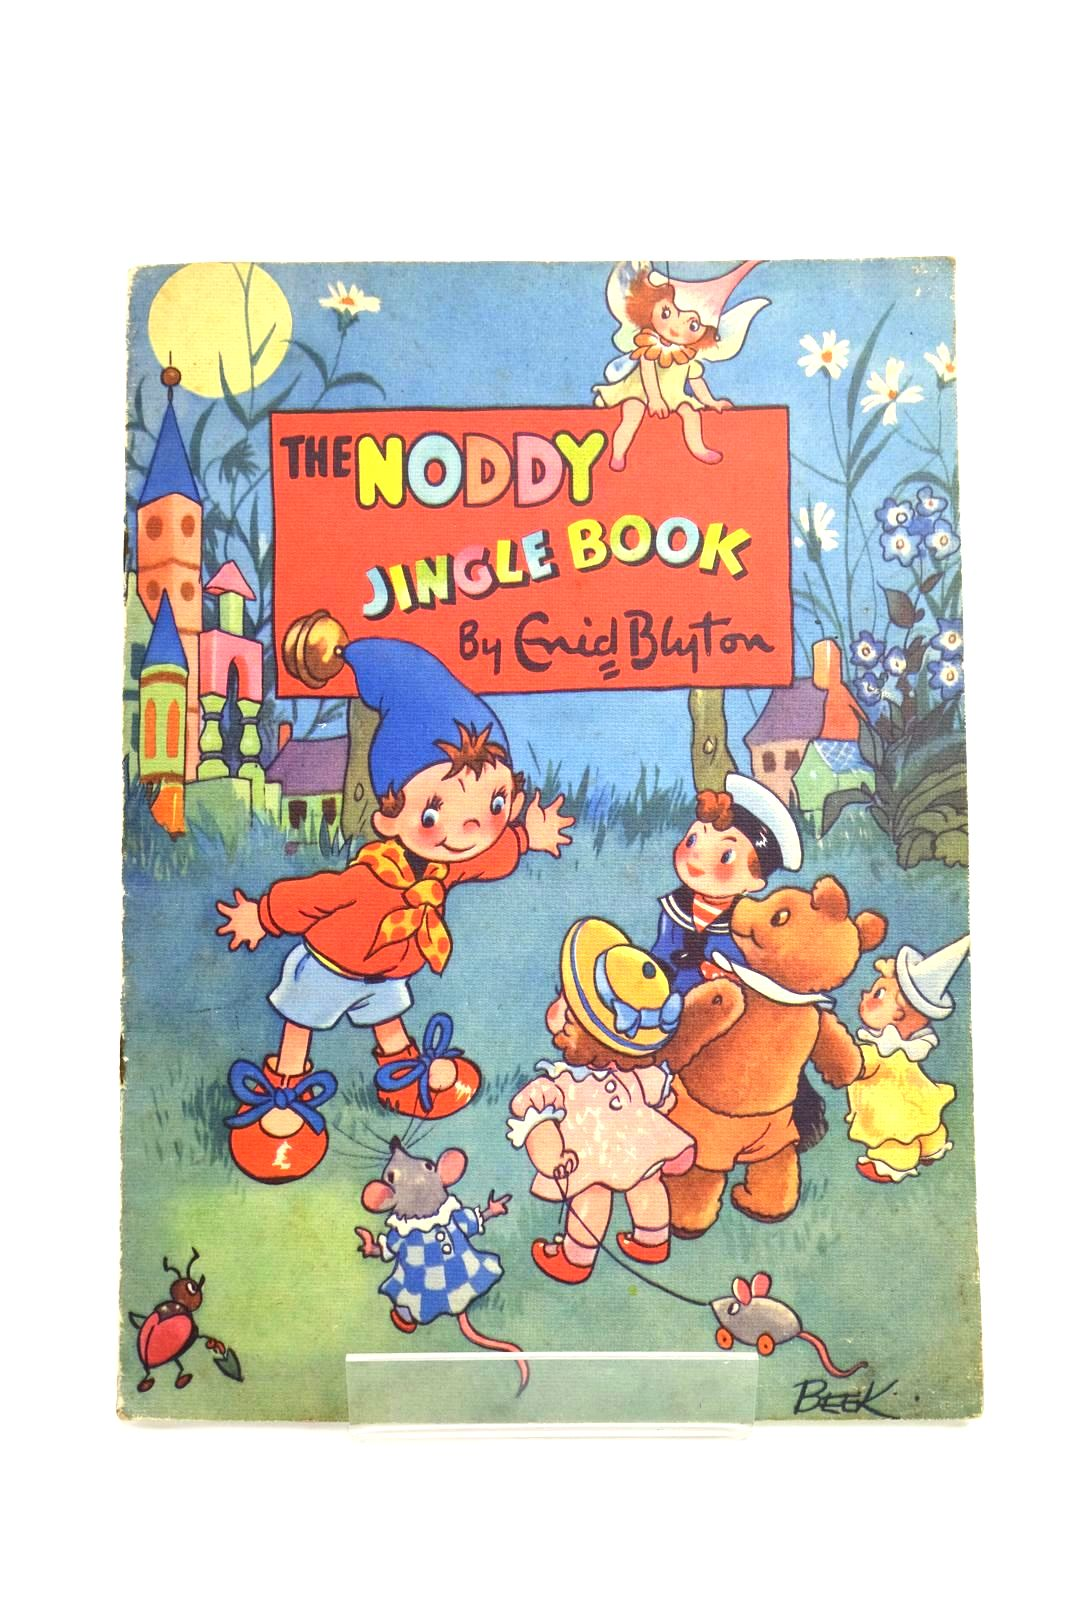 Photo of THE NODDY JINGLE BOOK written by Blyton, Enid illustrated by Beek, published by Sampson Low, Marston & Co., D.V. Publications Ltd. (STOCK CODE: 1321693)  for sale by Stella & Rose's Books